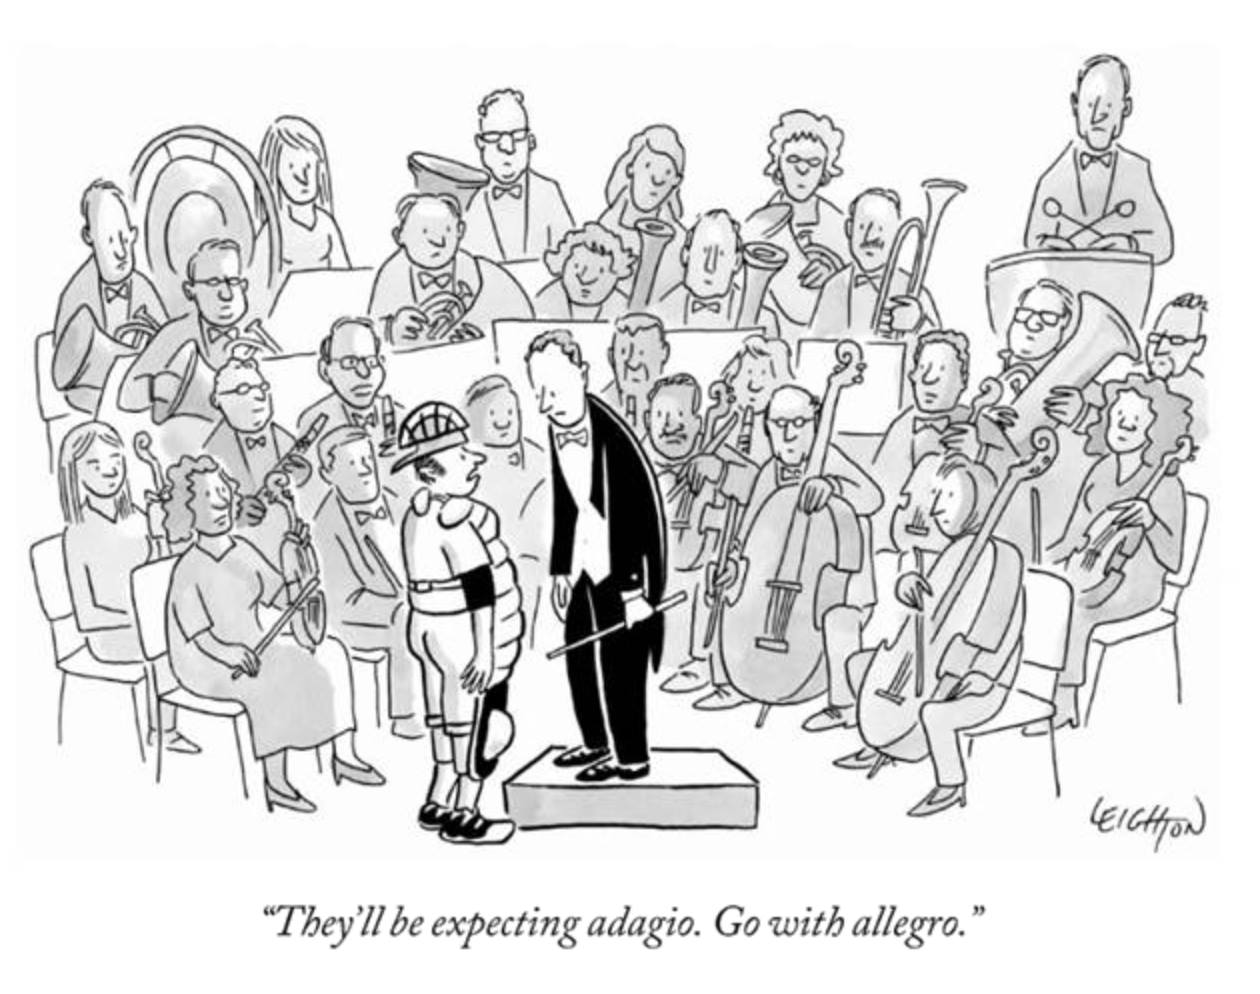 They'll be expecting adagio. Go with allegro.